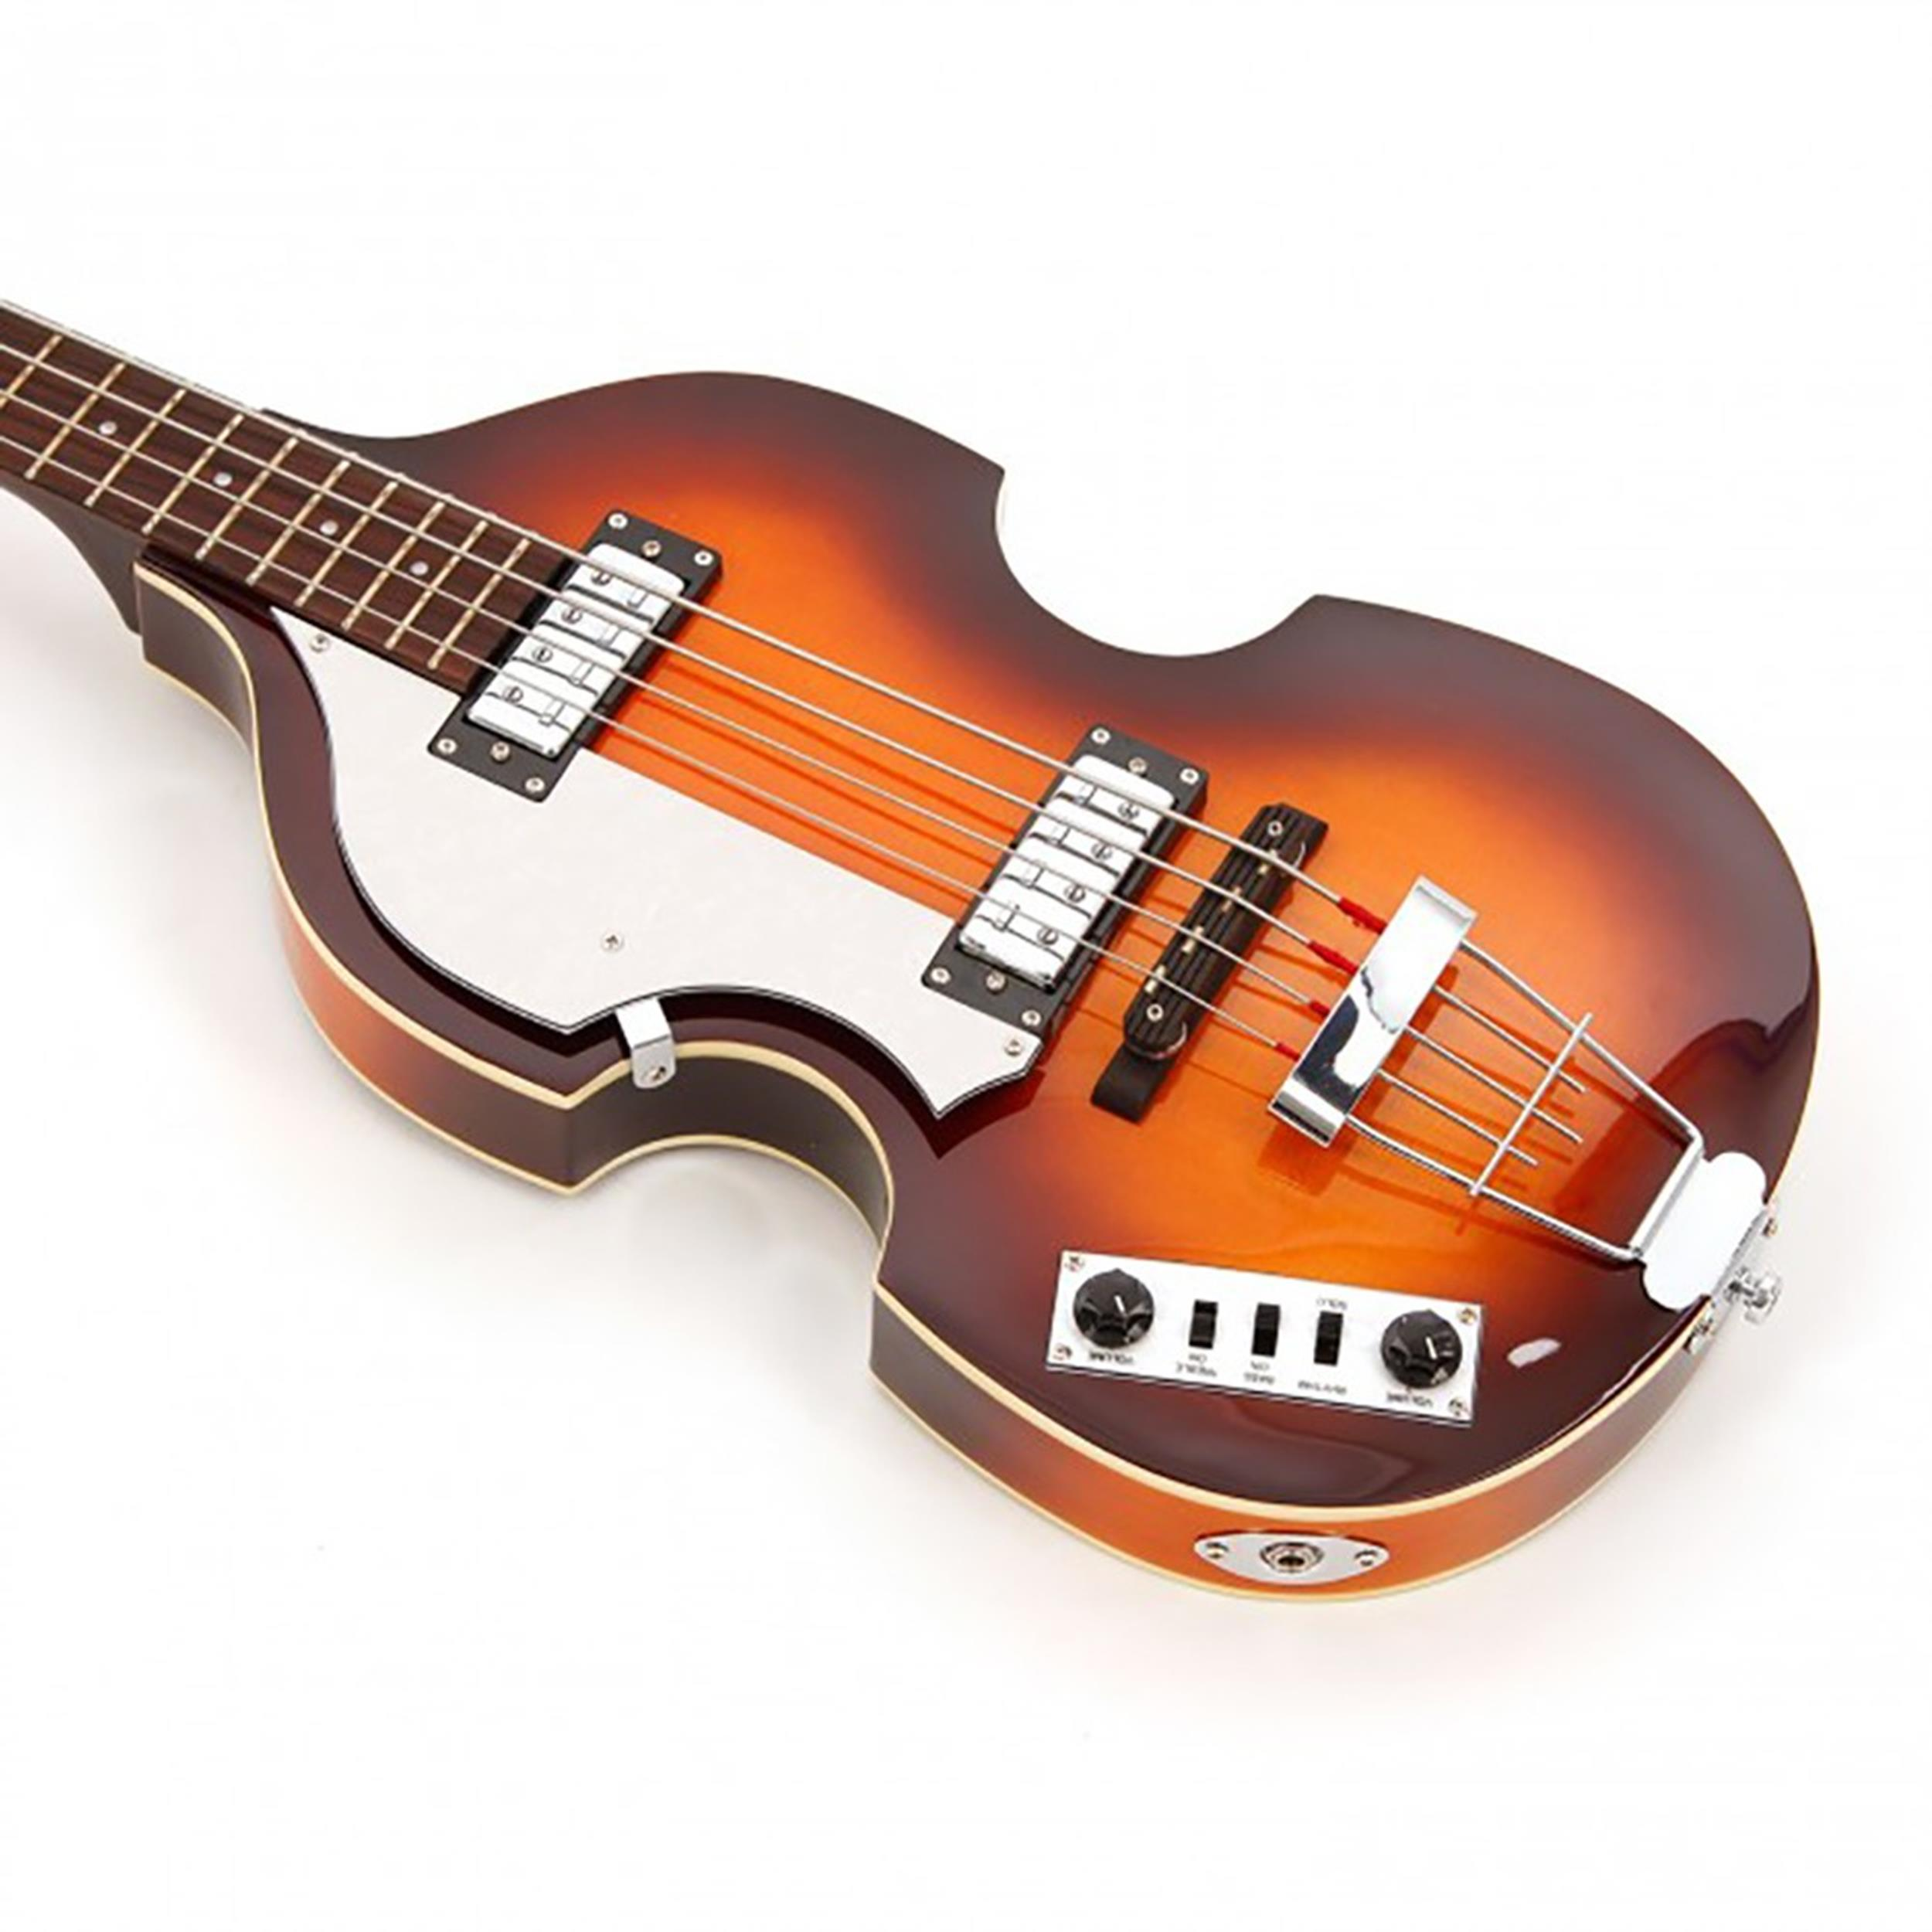 HOFNER HI BB L SB IGNITION VIOLIN BEATLES BASS SUNBURST MANCINO LEFT HAND